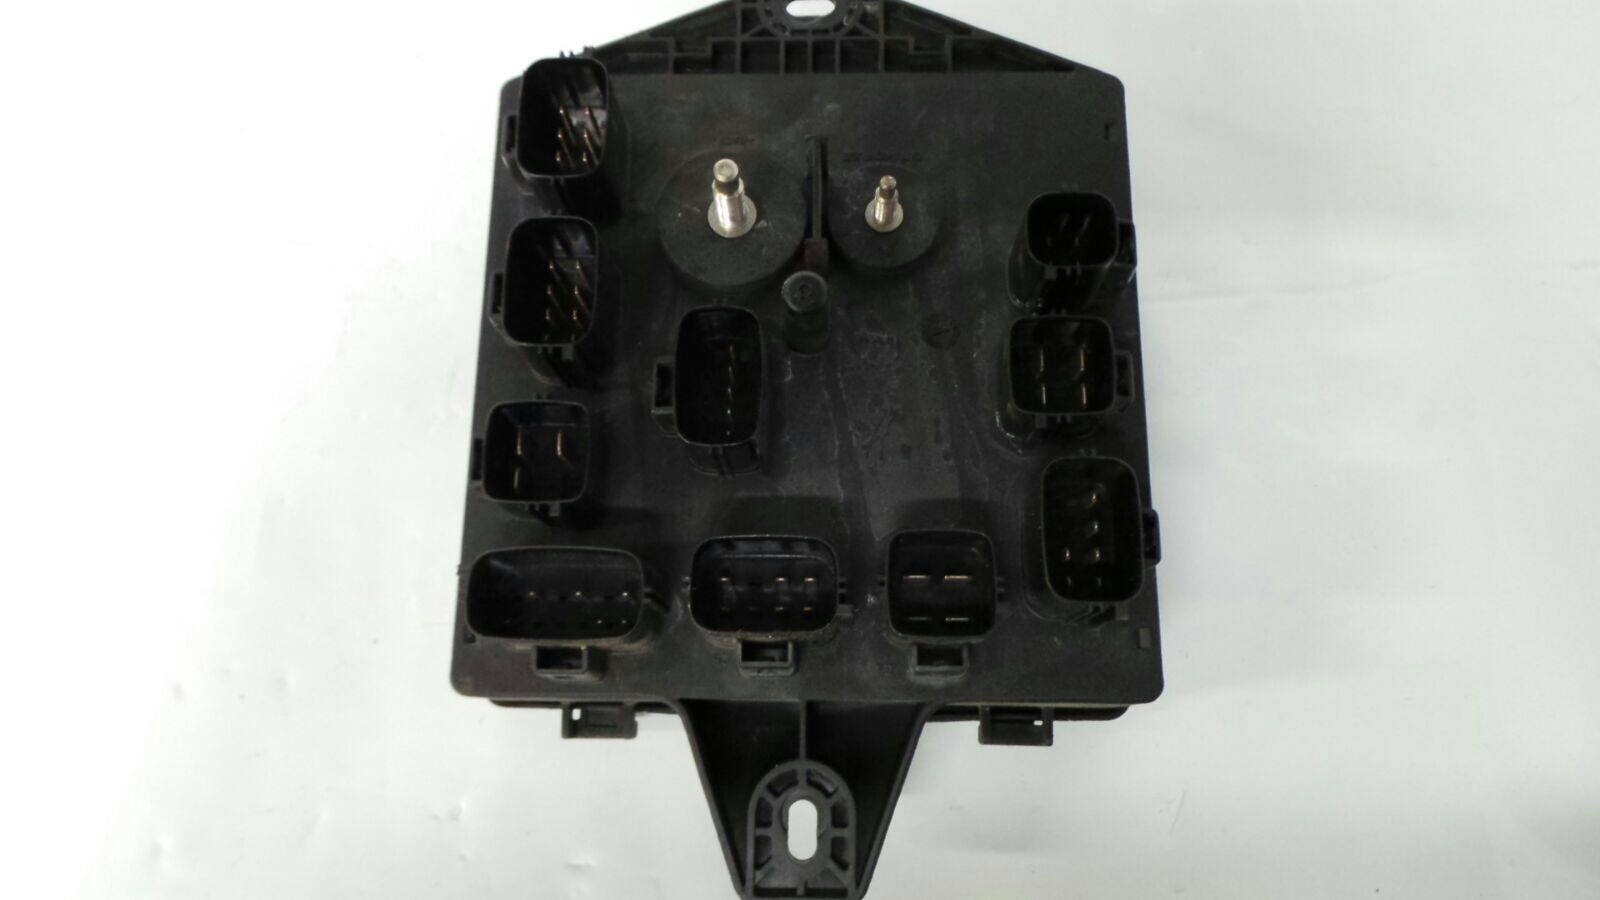 Aston Martin Db9 2004 On Fuse Box Petrol Automatic For Sale From Renault Fluence Lid 60 V12 Engine Bay 35 Way